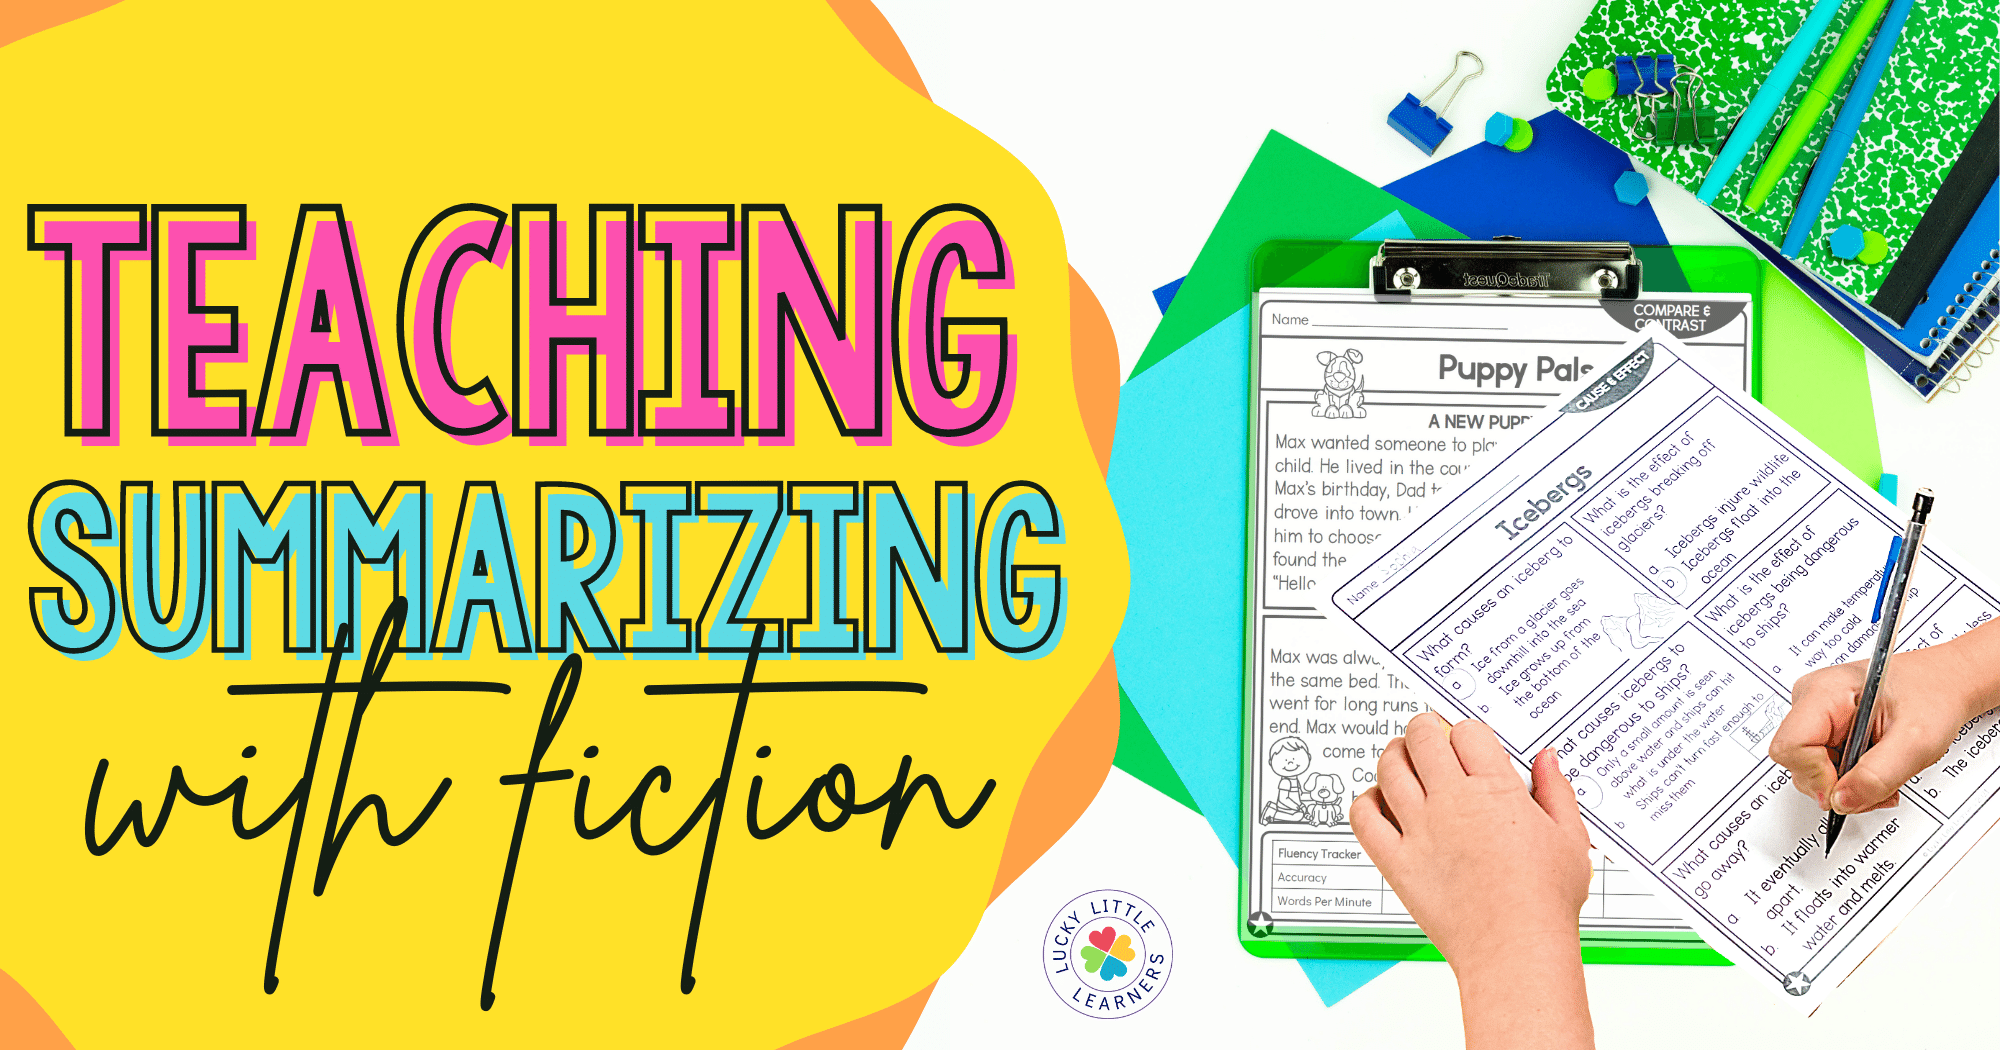 Teaching summarizing with fiction text